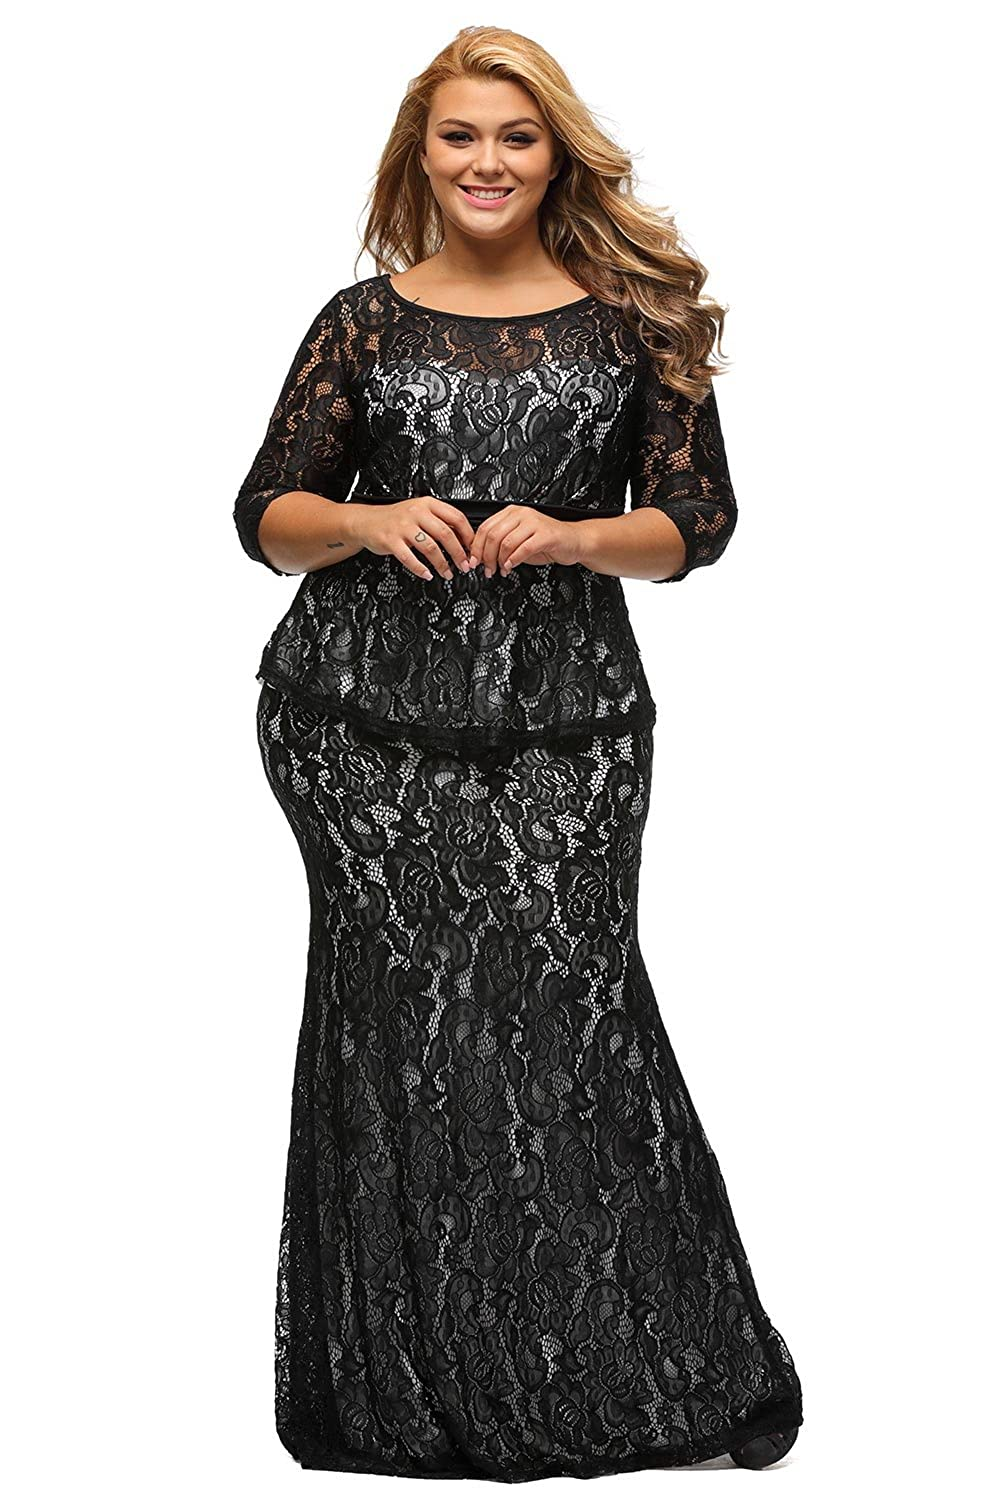 ILFtrend Women Plus Size Party Dresses Formal